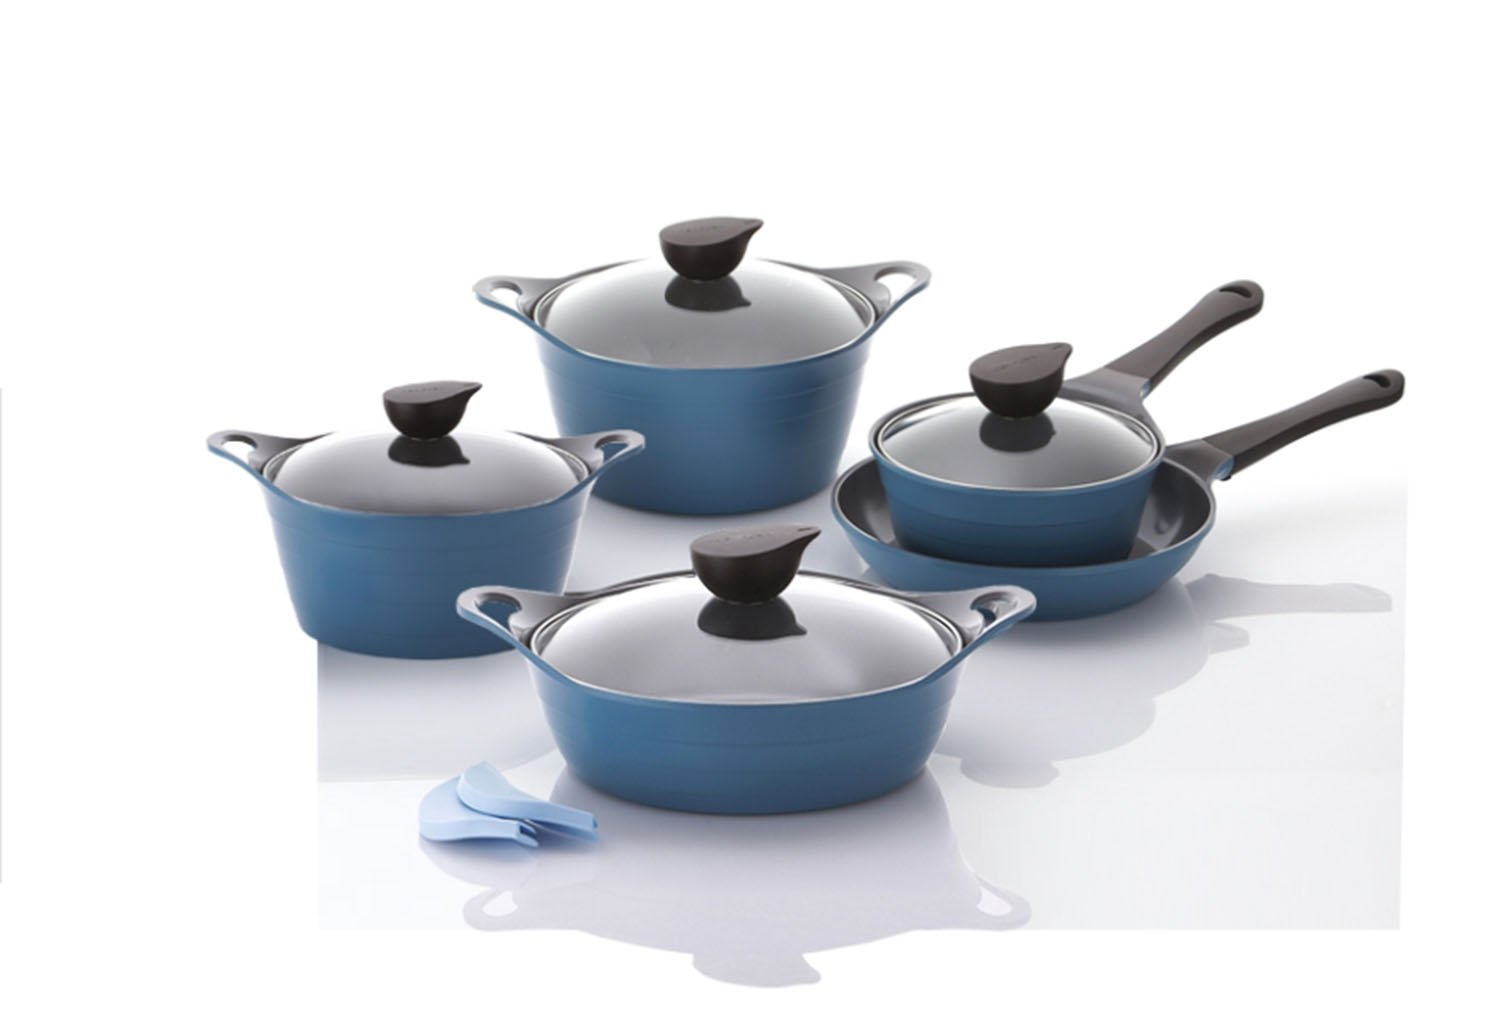 Neoflam Eela Induction Natural mineral Ceramic Ecolon Coating Cast iron ware Cookware Pot Frying Pan 9p Set Blue